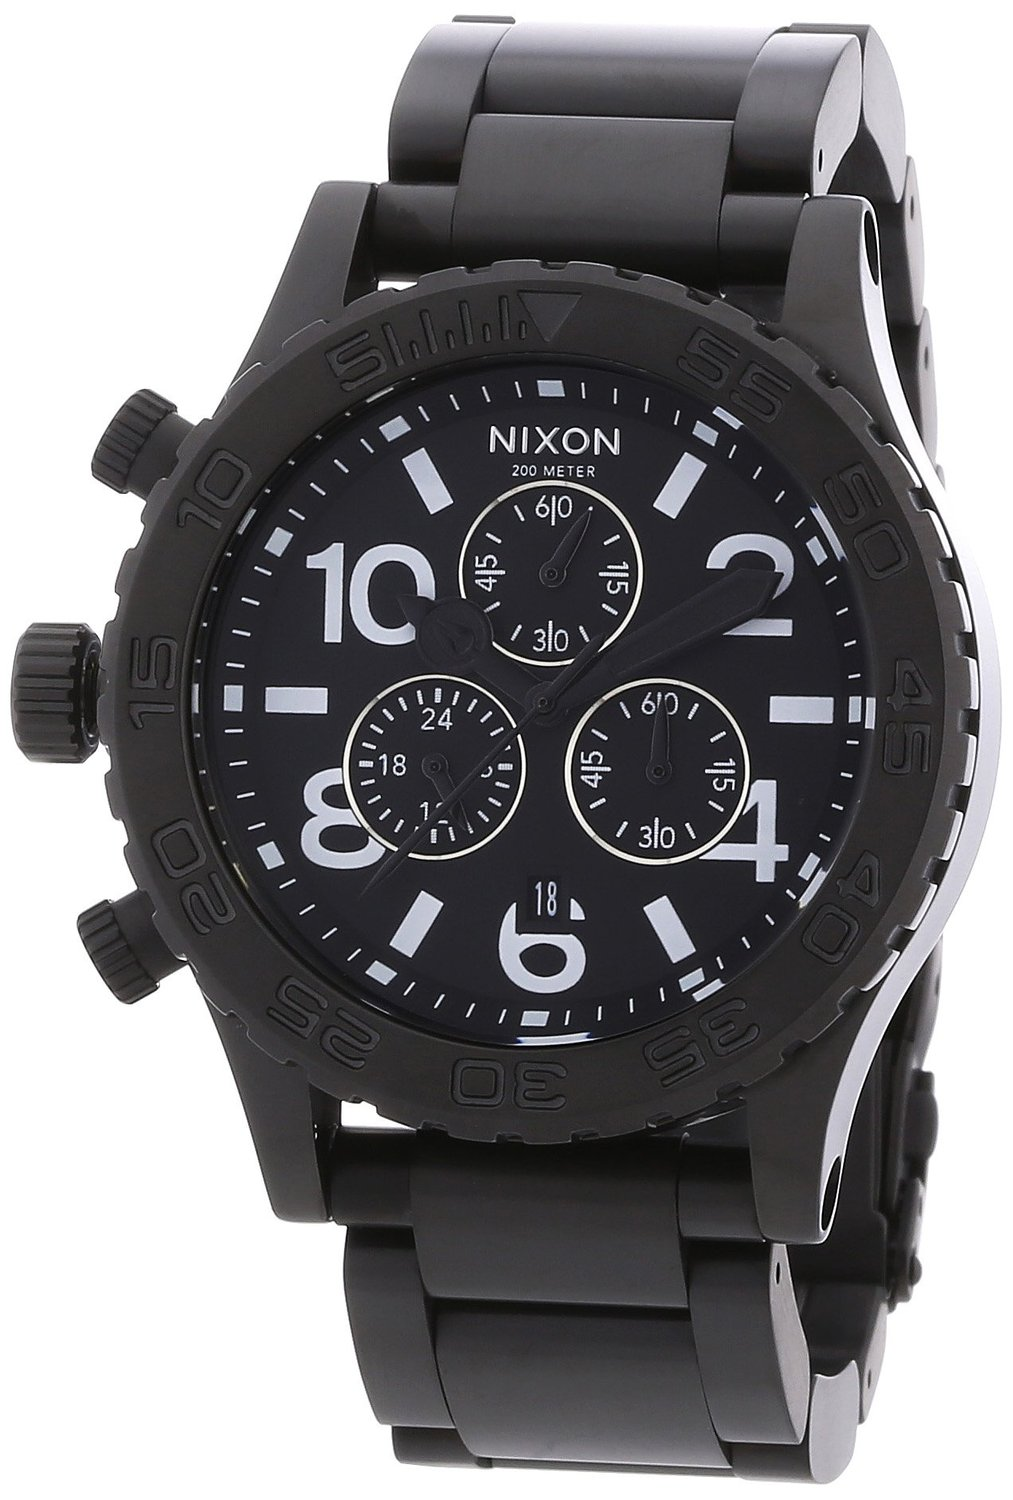 Stainless Steel Unisex Watch A037001-00